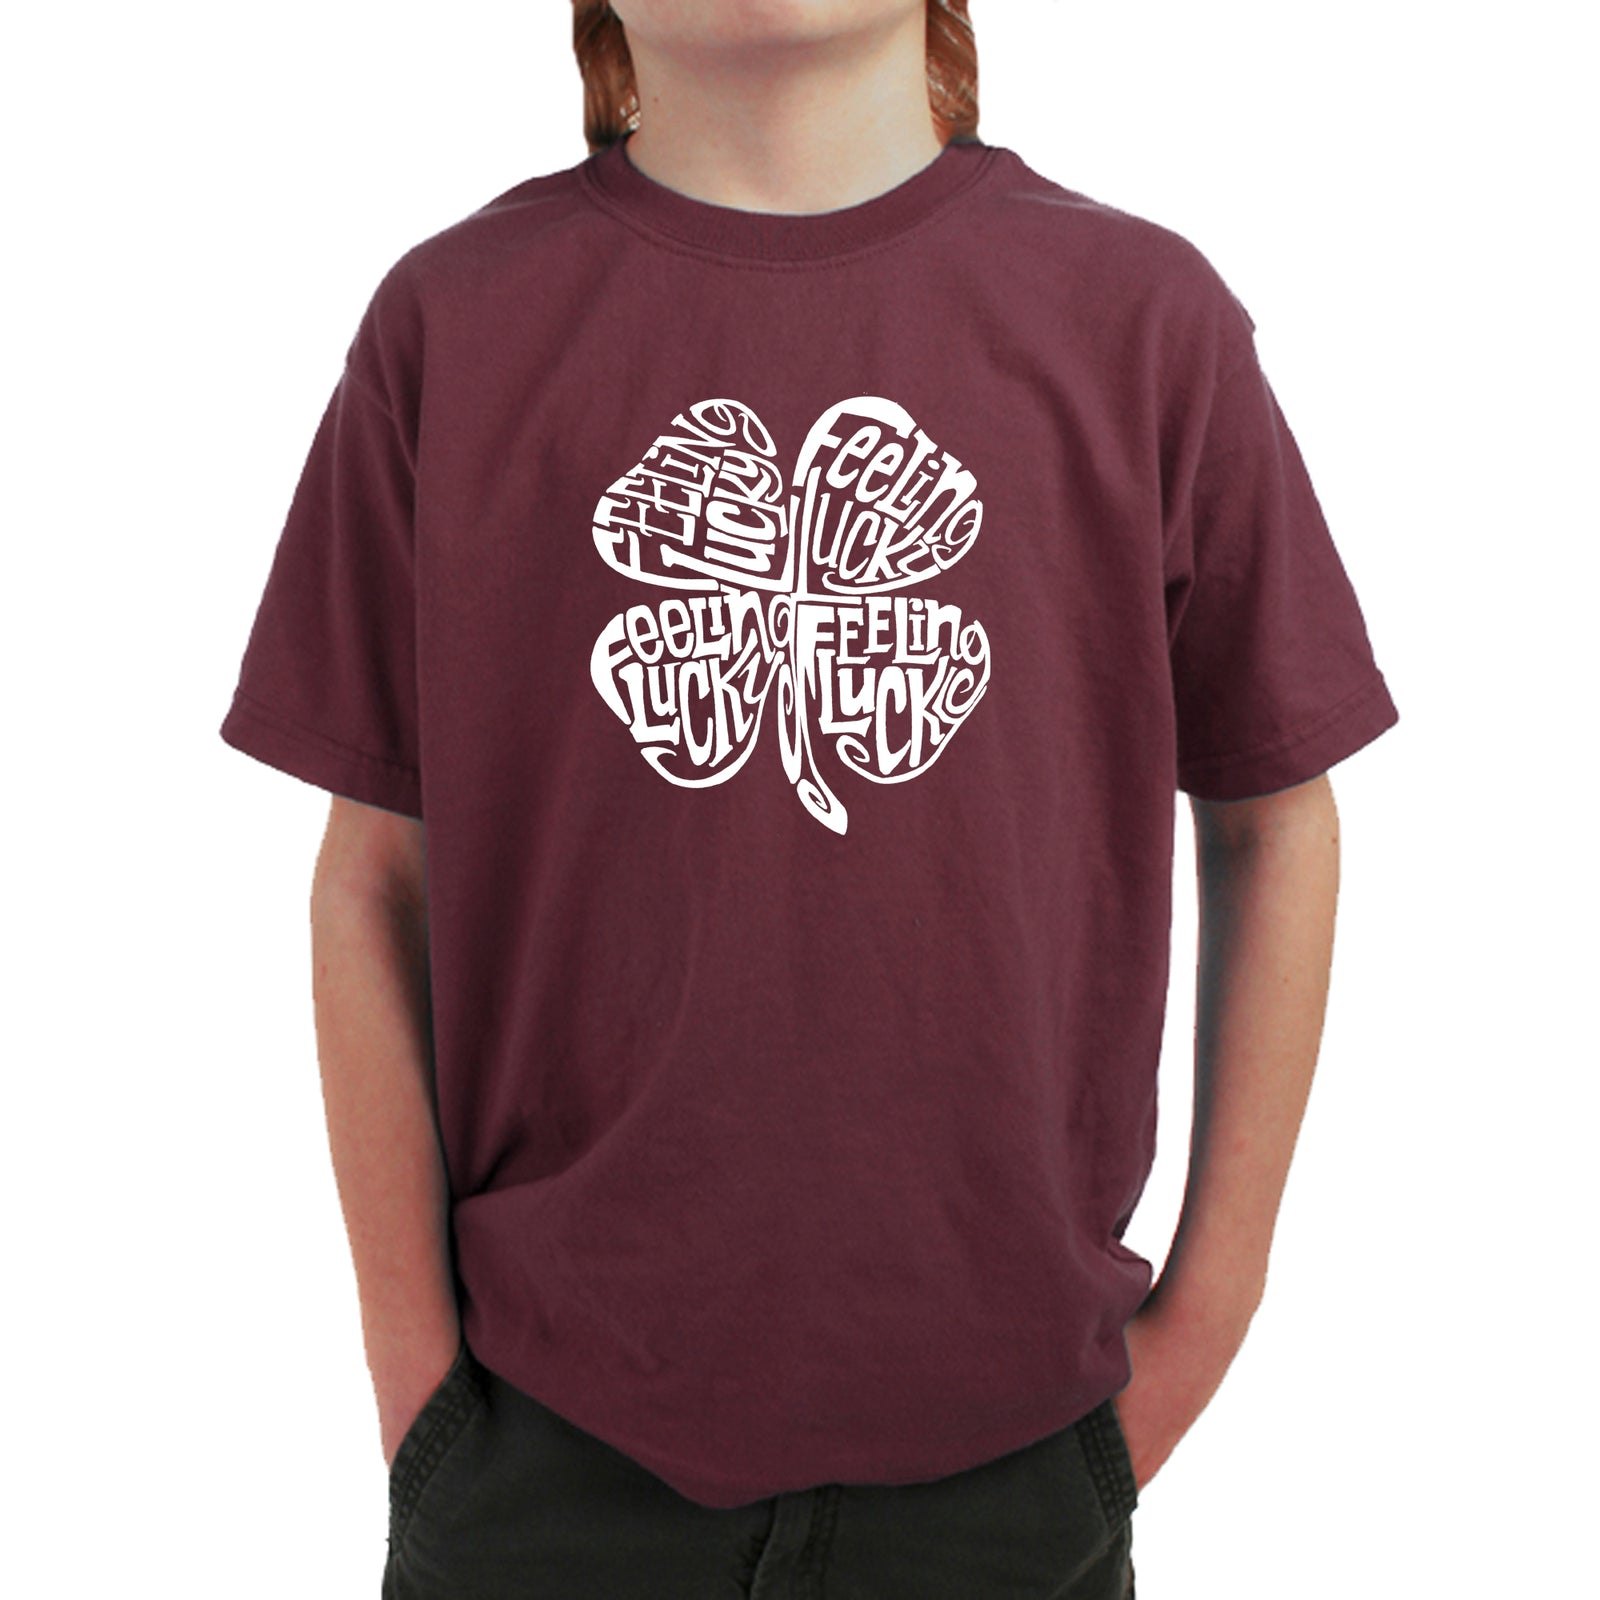 Boy's Word Art T-shirt - Feeling Lucky